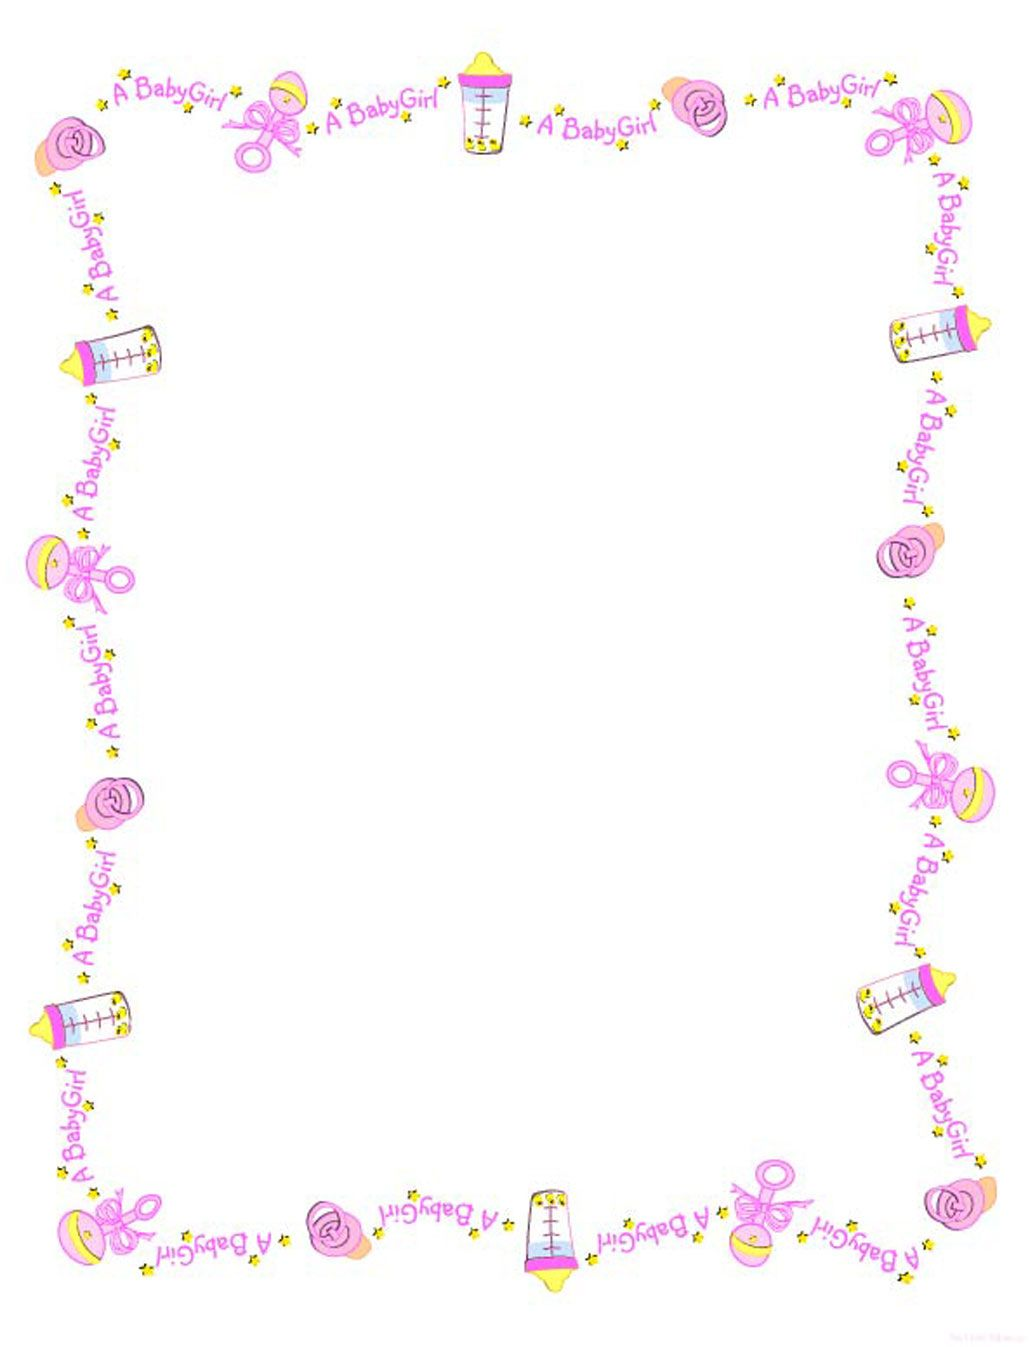 Babyshower Borders : babyshower, borders, Borders, Clipart, Border,, Shower, Clipart,, Welcome, Girls